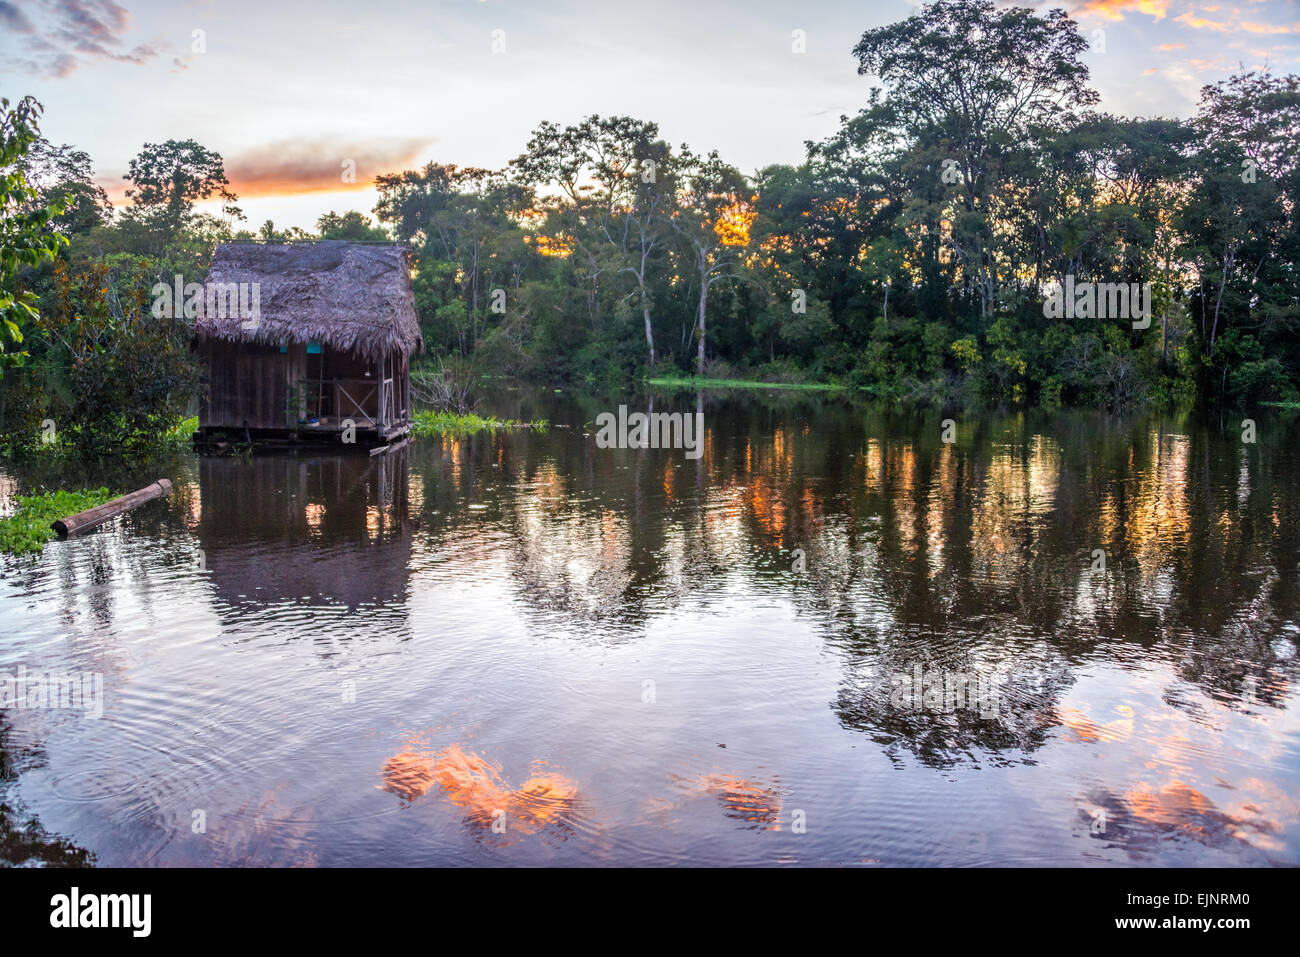 View of the Amazon Rainforest at sunset near Iquitos, Peru - Stock Image